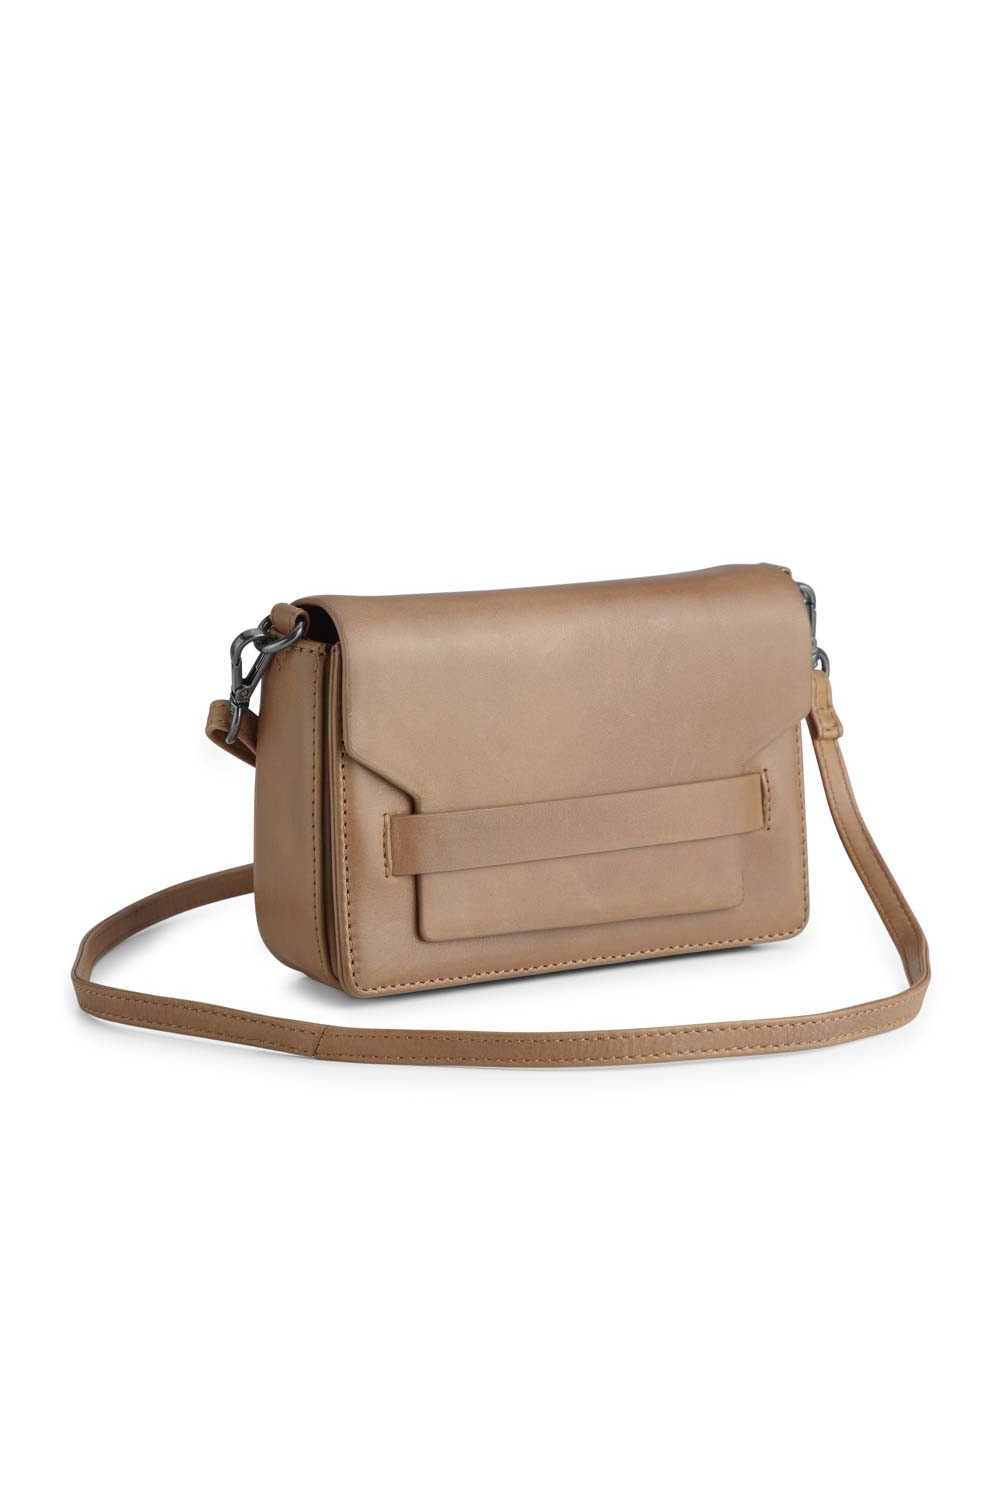 Vanya Crossbody Bag Antique - Caramel-2